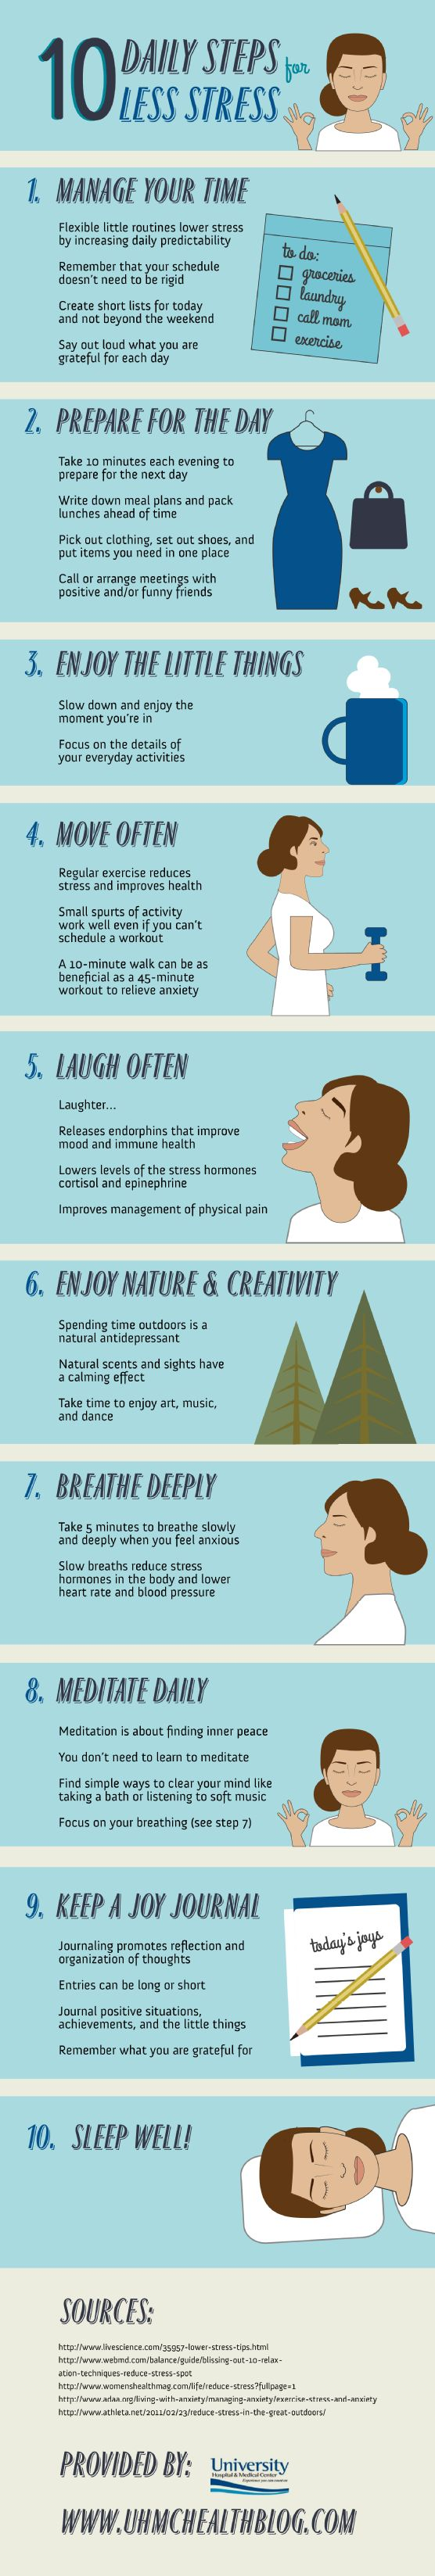 10 Daily Steps for Less Stress.